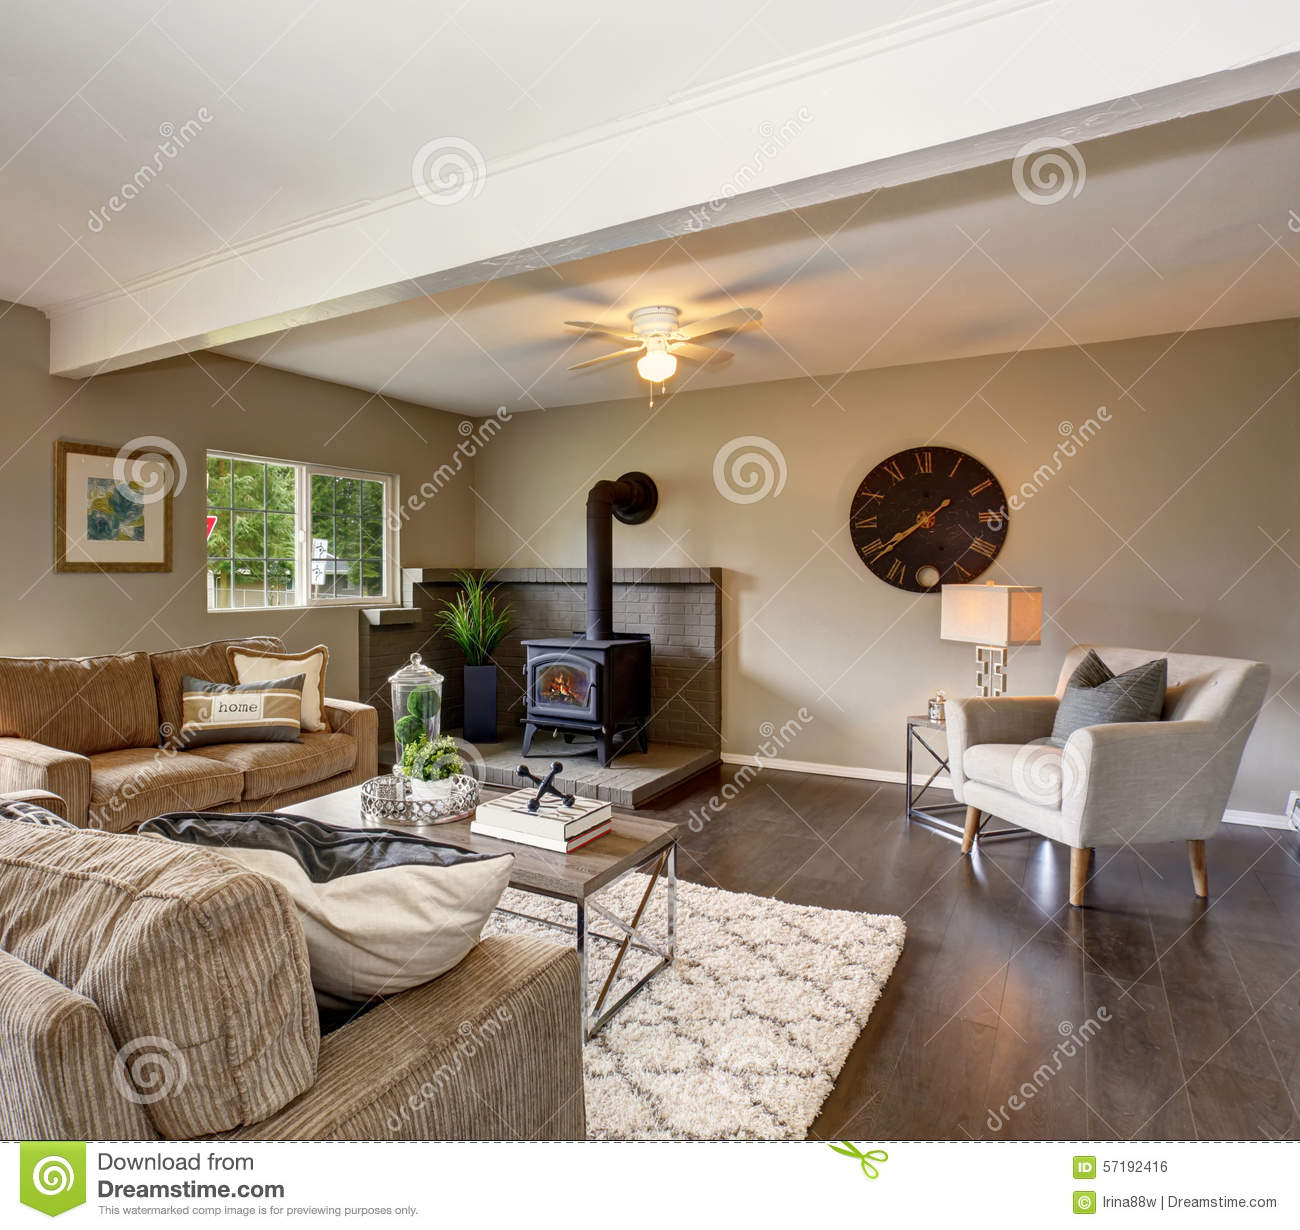 modernized living room with fireplace, and fluffy rug. stock photo